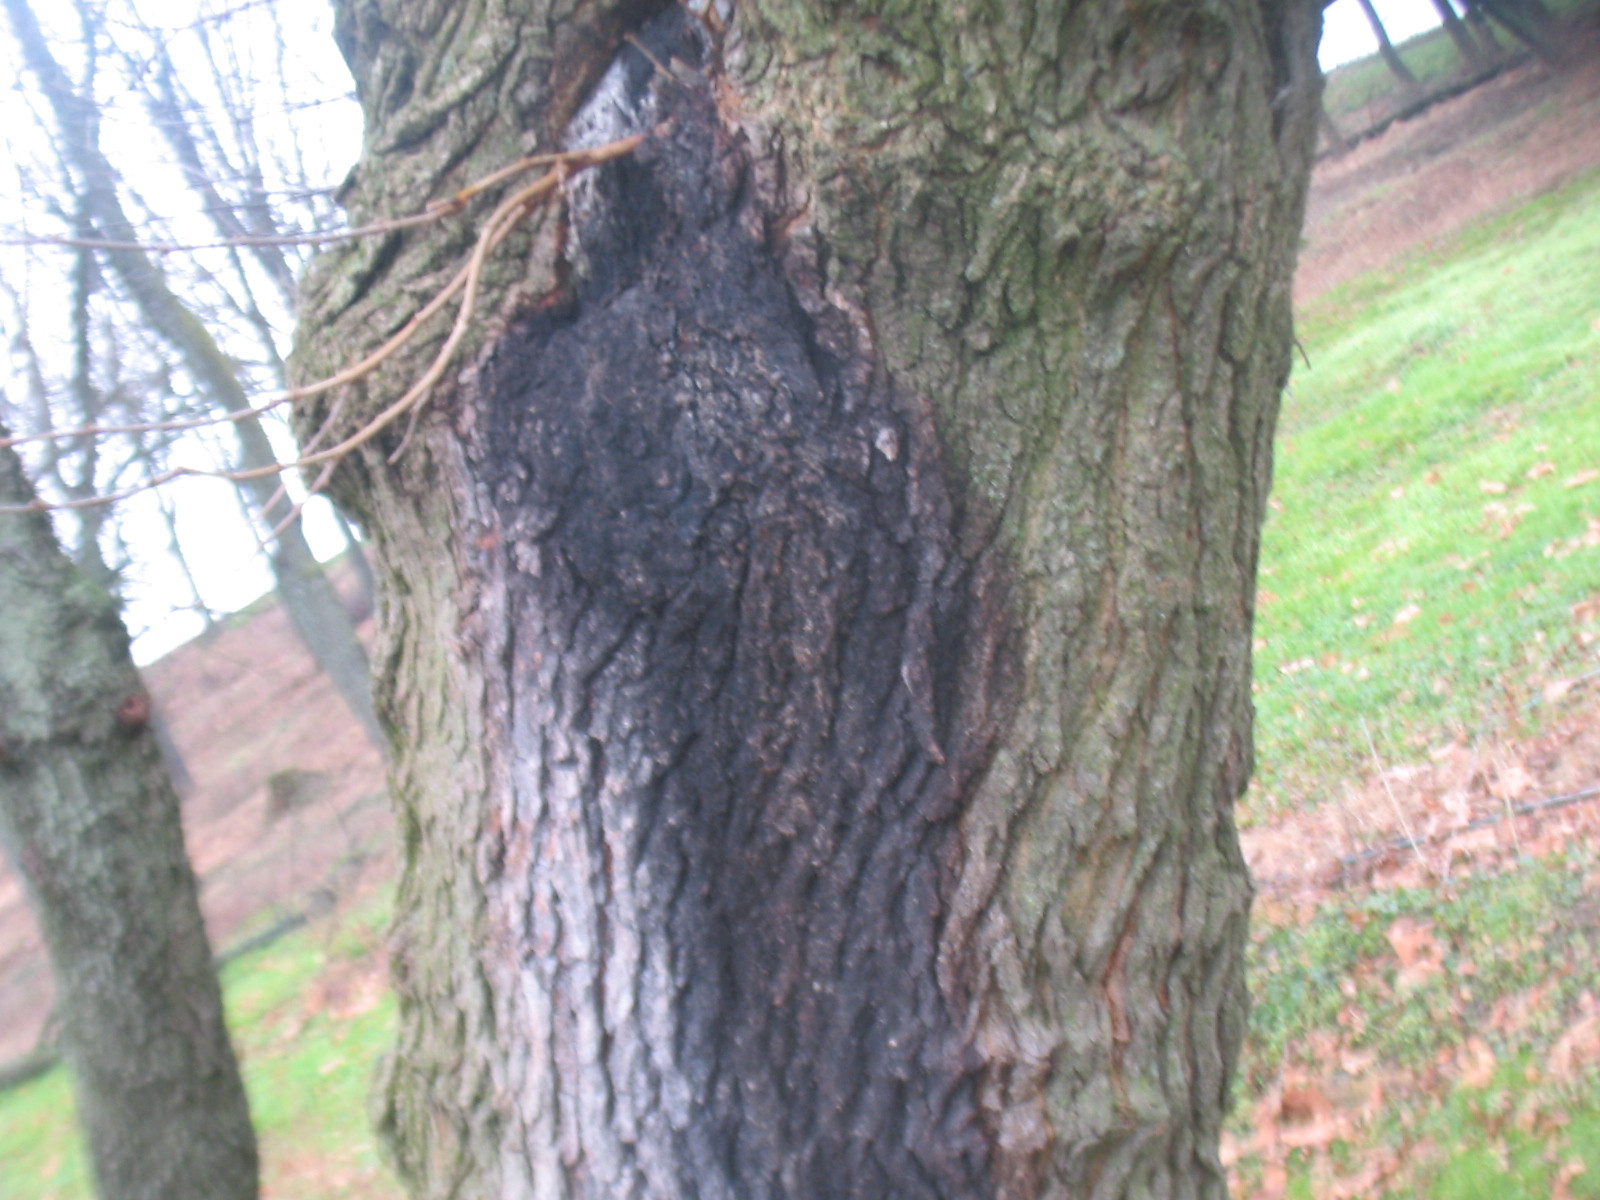 How To Remove Pine Sap From Wood